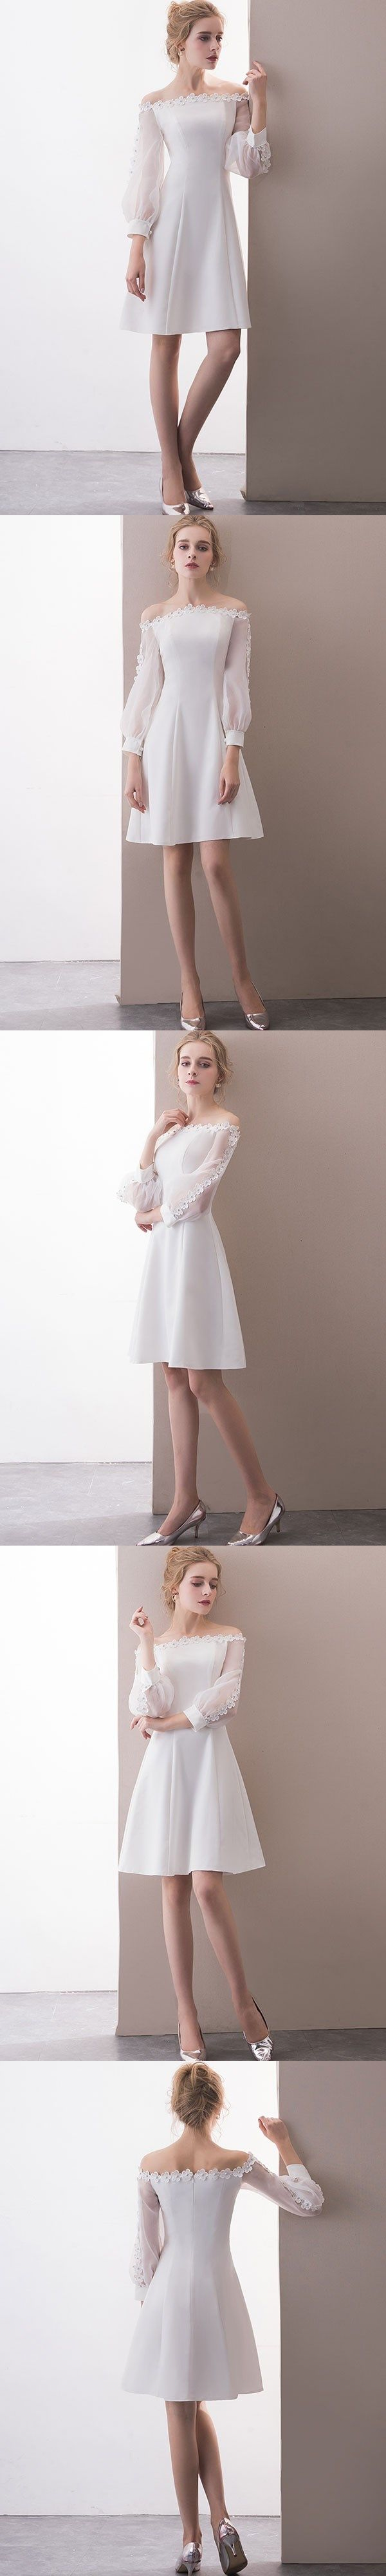 Long sleeve cute homecoming dresses aline short prom dress party